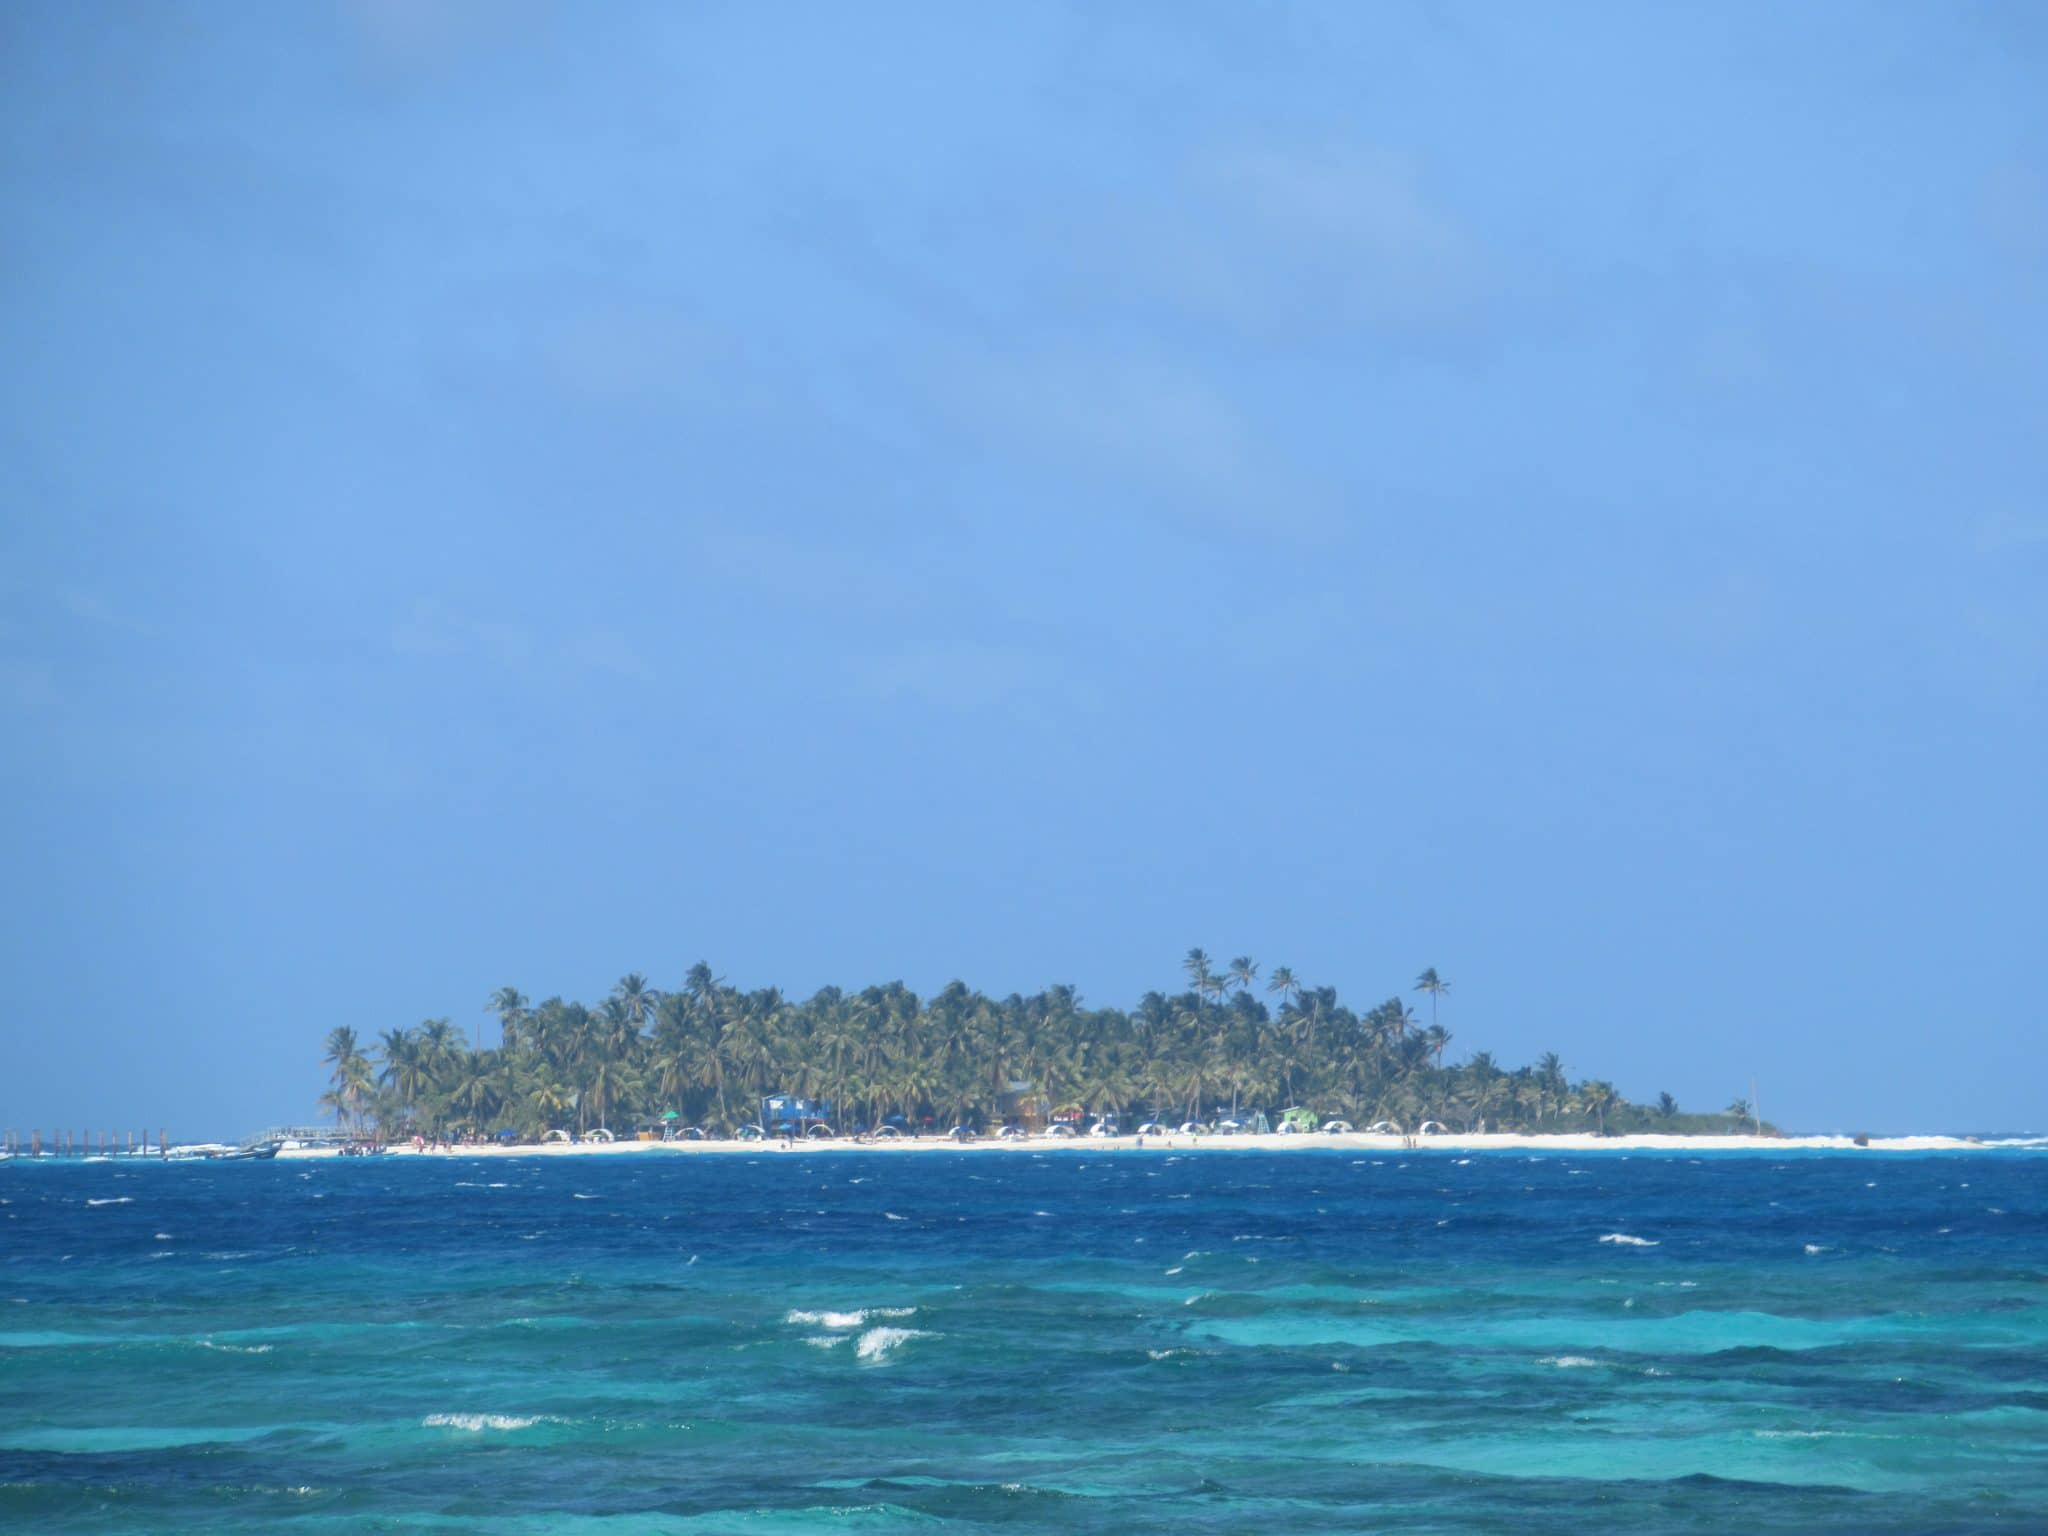 Practical Guide to Johnny Cay – Island off San Andres, Colombia